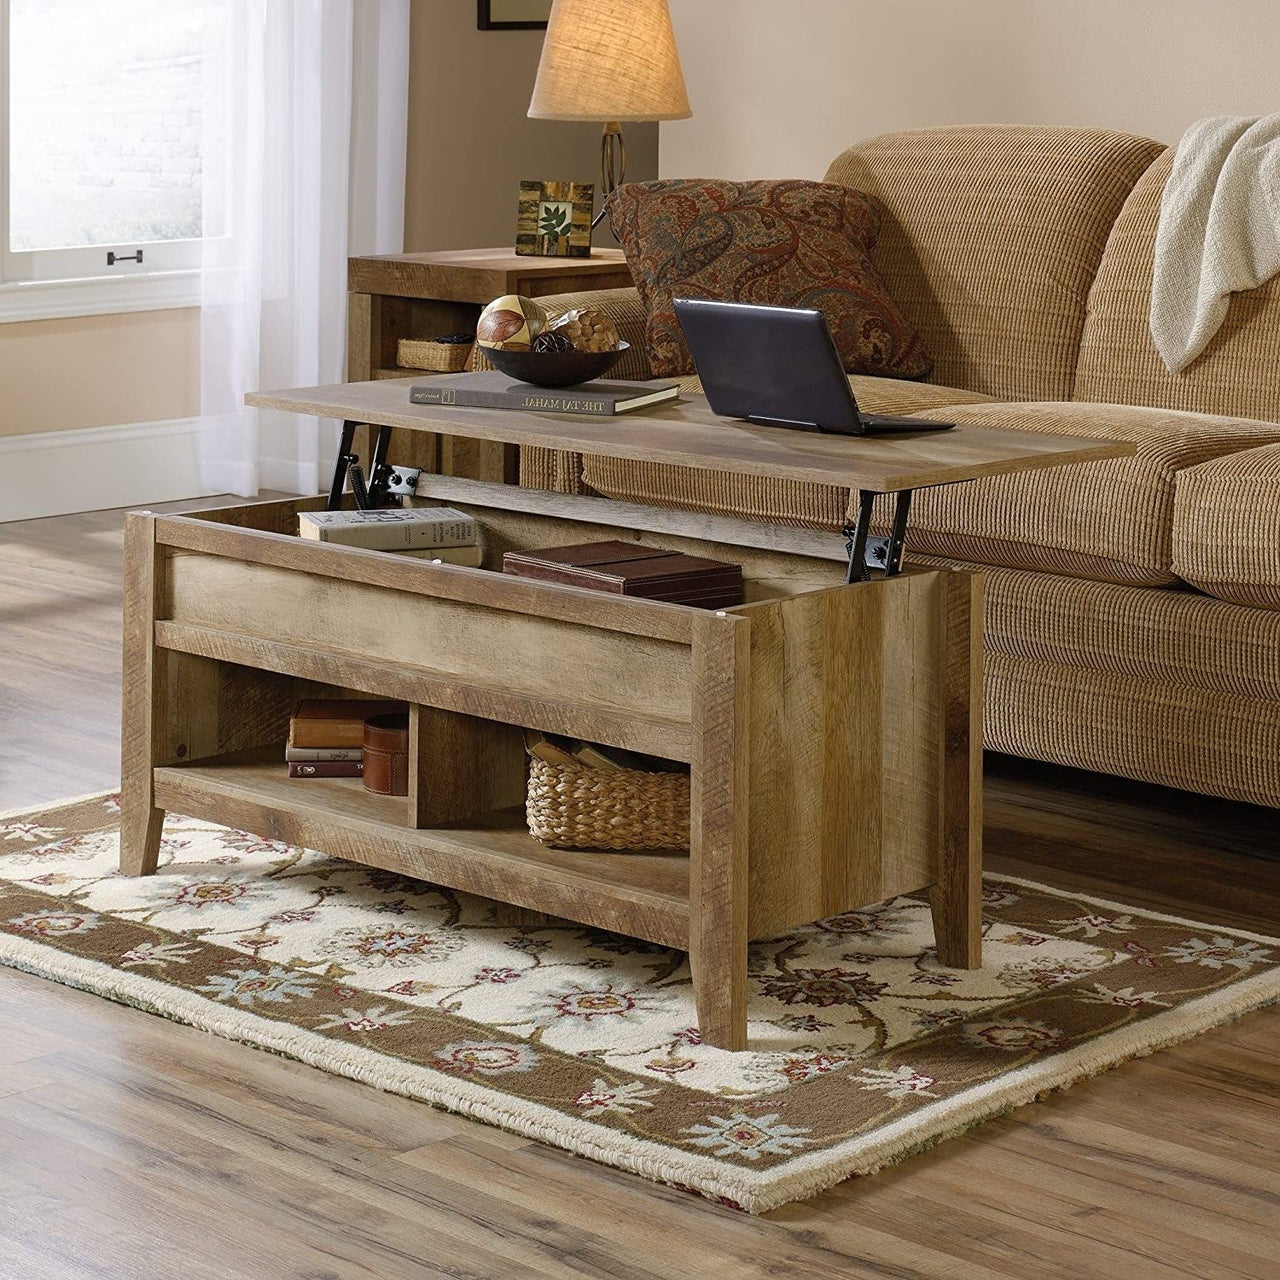 Rustic Farmhouse Oak Lift Top Coffee Table